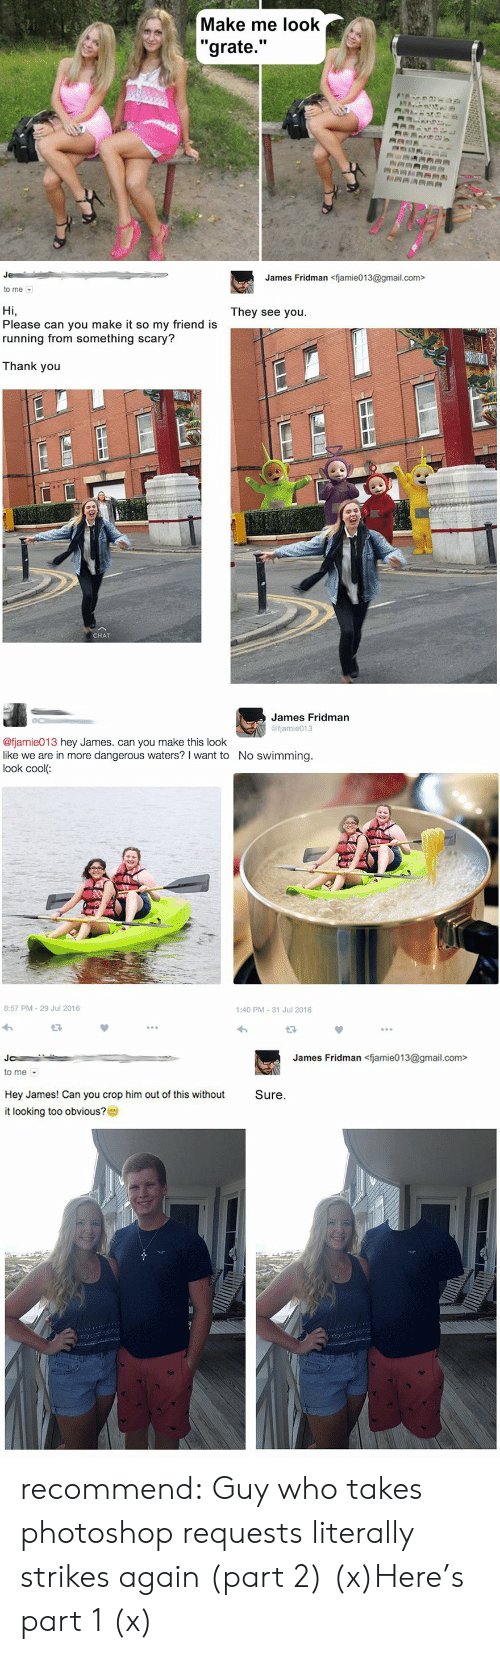 "Photoshop, Target, and Tumblr: Make me look  ""grate.""  ANA  RRARRAA   James Fridman <fjamie013@gmail.com>  to me  They see you  Hi,  Please can you make it so my friend is  running from something scary?  Thank you  CHAT   James Fridman  @fjamie013  @fjamie013 hey James. can you make this look  like we are in more dangerous waters? I want to  look cool:  No swimming.  8:57 PM 29 Jul 2016  1:40 PM 31 Jul 2016   James Fridman<fjamie013@gmail.com>  Jo  to me  Hey James! Can you crop him out of this without  Sure.  it looking too obvious?0 recommend:  Guy who takes photoshop requests literally strikes again (part 2) (x)Here's part 1 (x)"